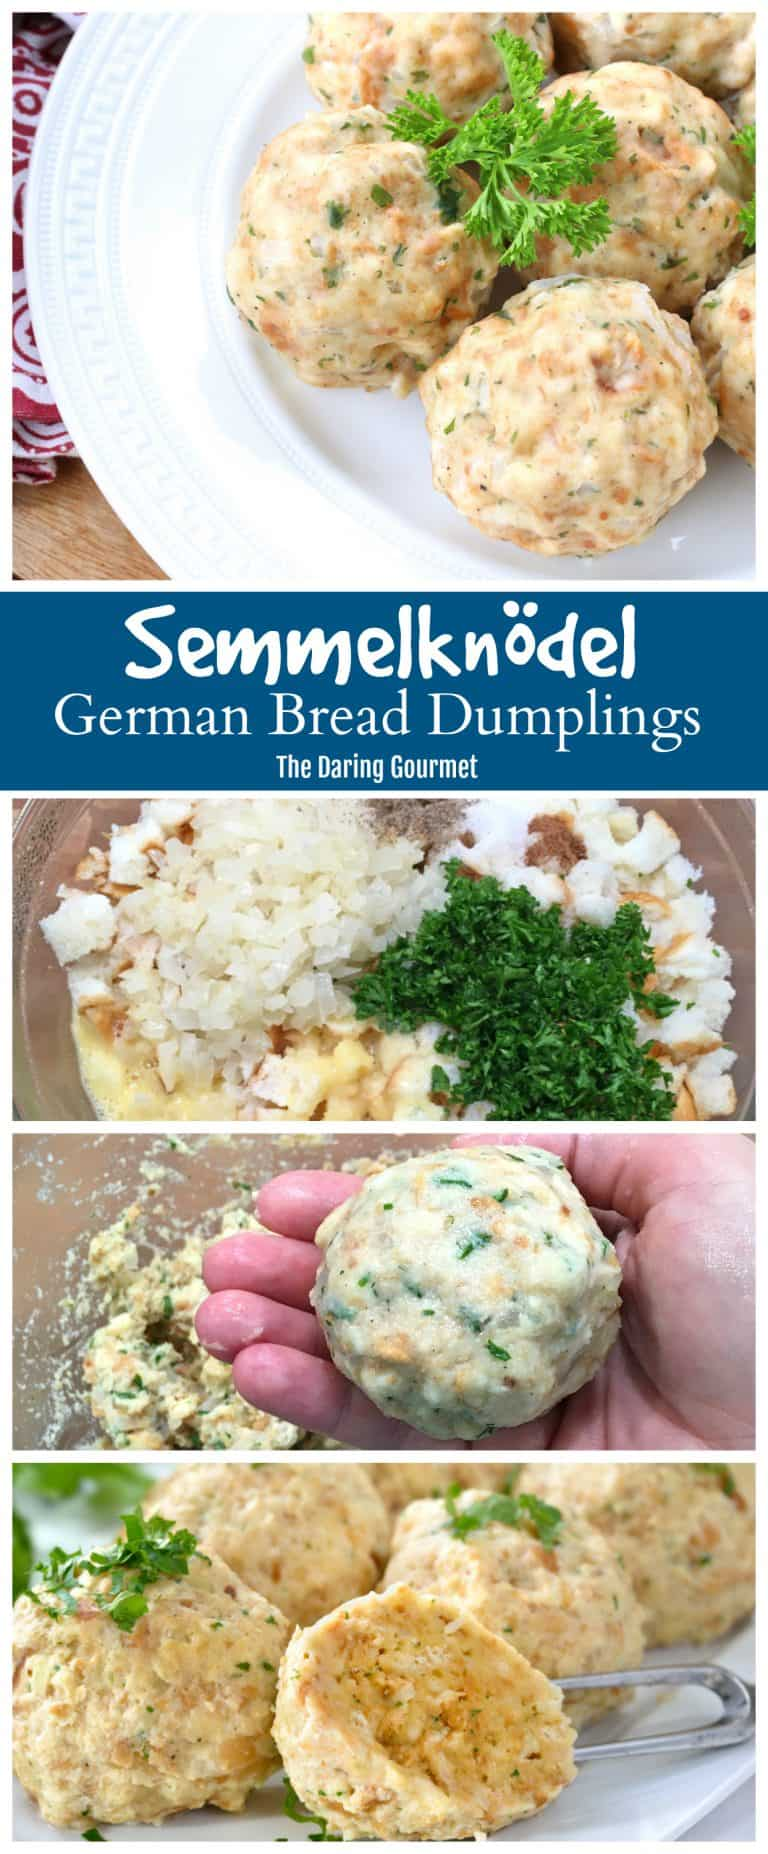 semmelknoedel german dumplings recipe knoedel